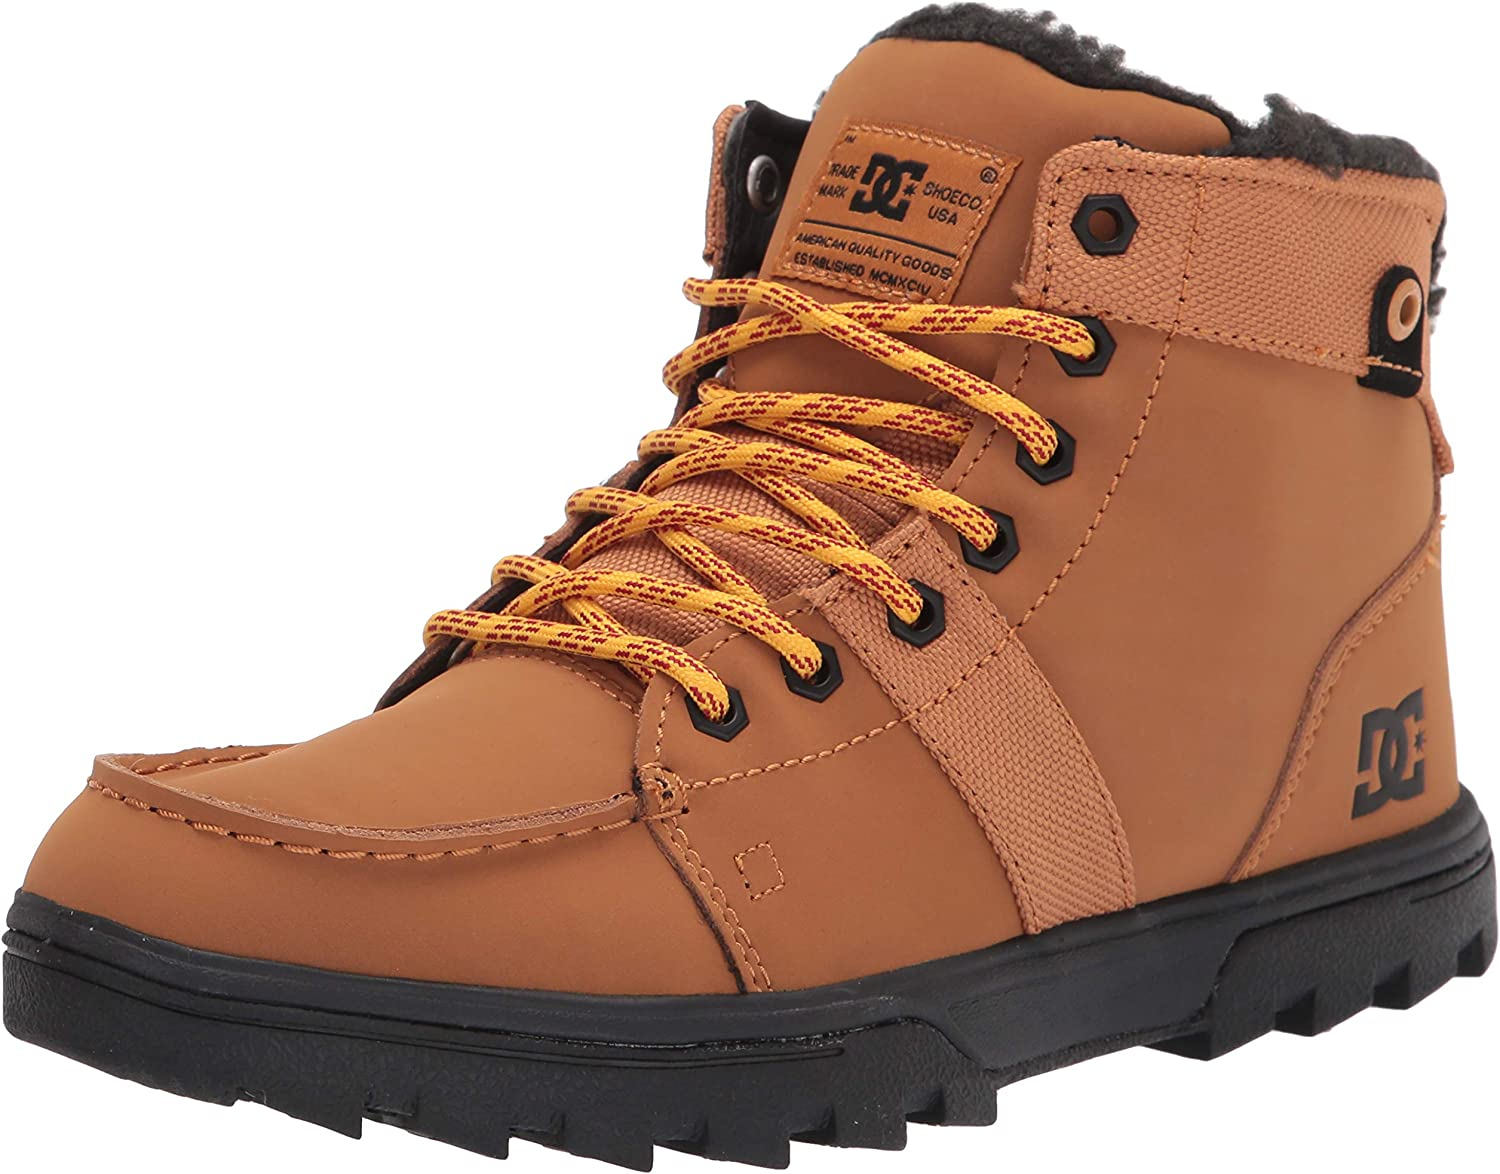 DC mens Cold Weather Boots Casual Our shop OFFers the best service All items free shipping Snow